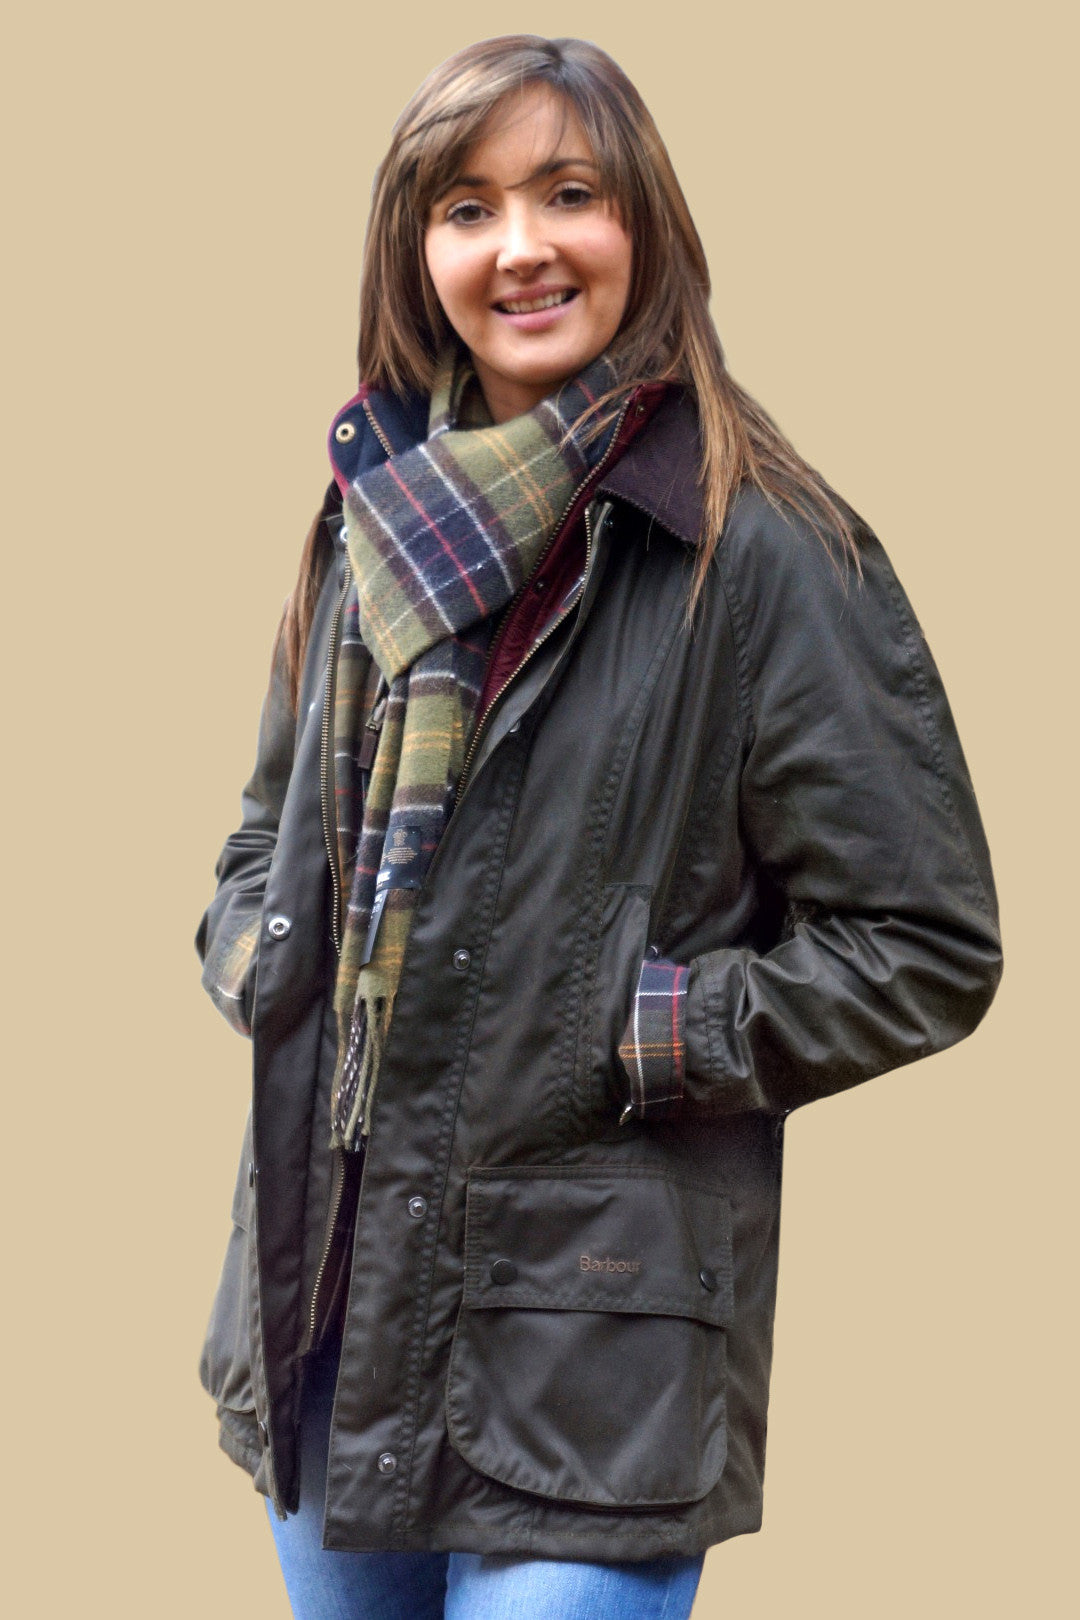 dee25f51356 Barbour Online Store - Smyths Country Sports